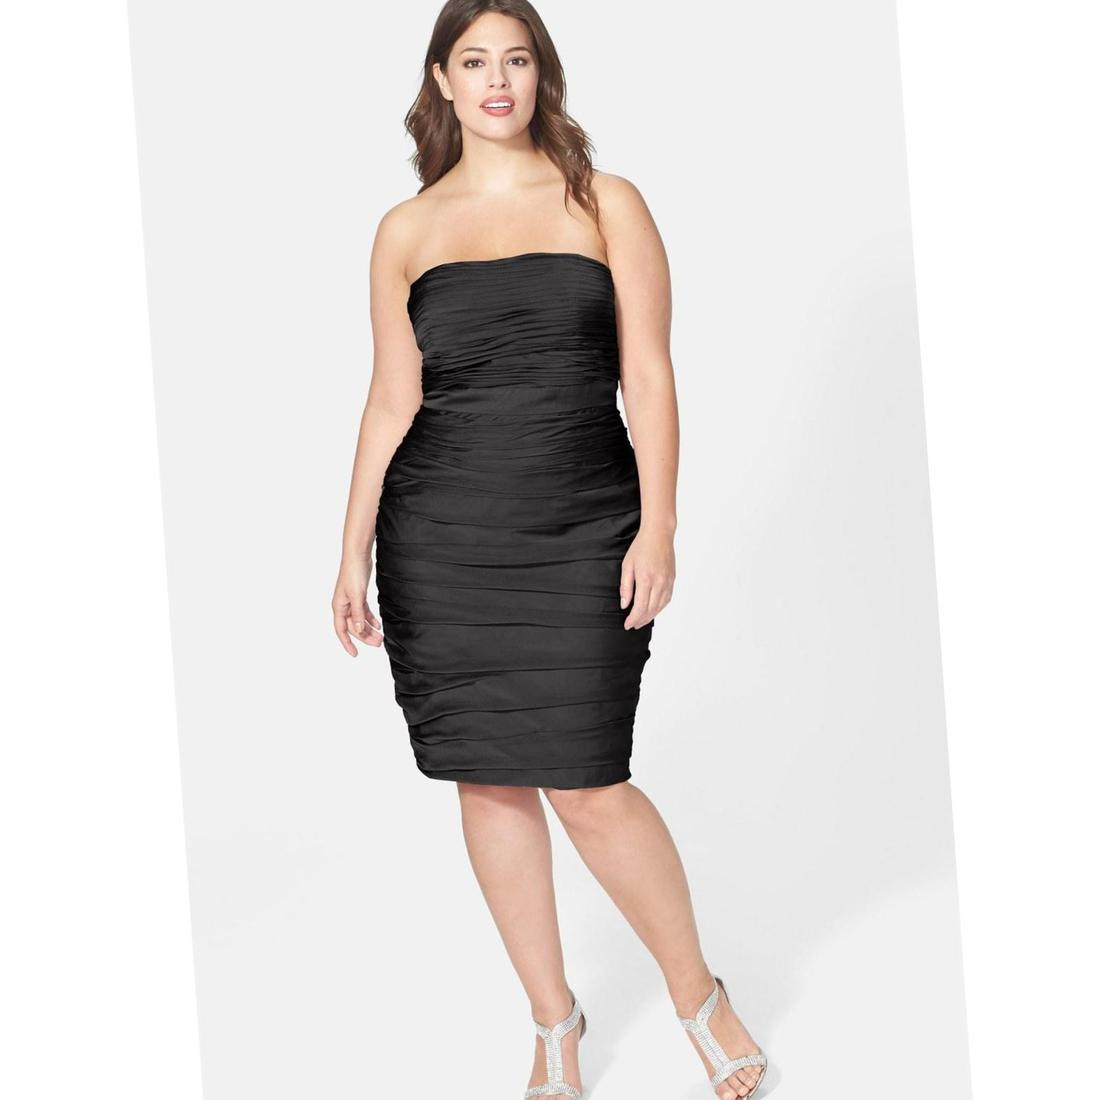 Strapless Plus Size Dresses 98